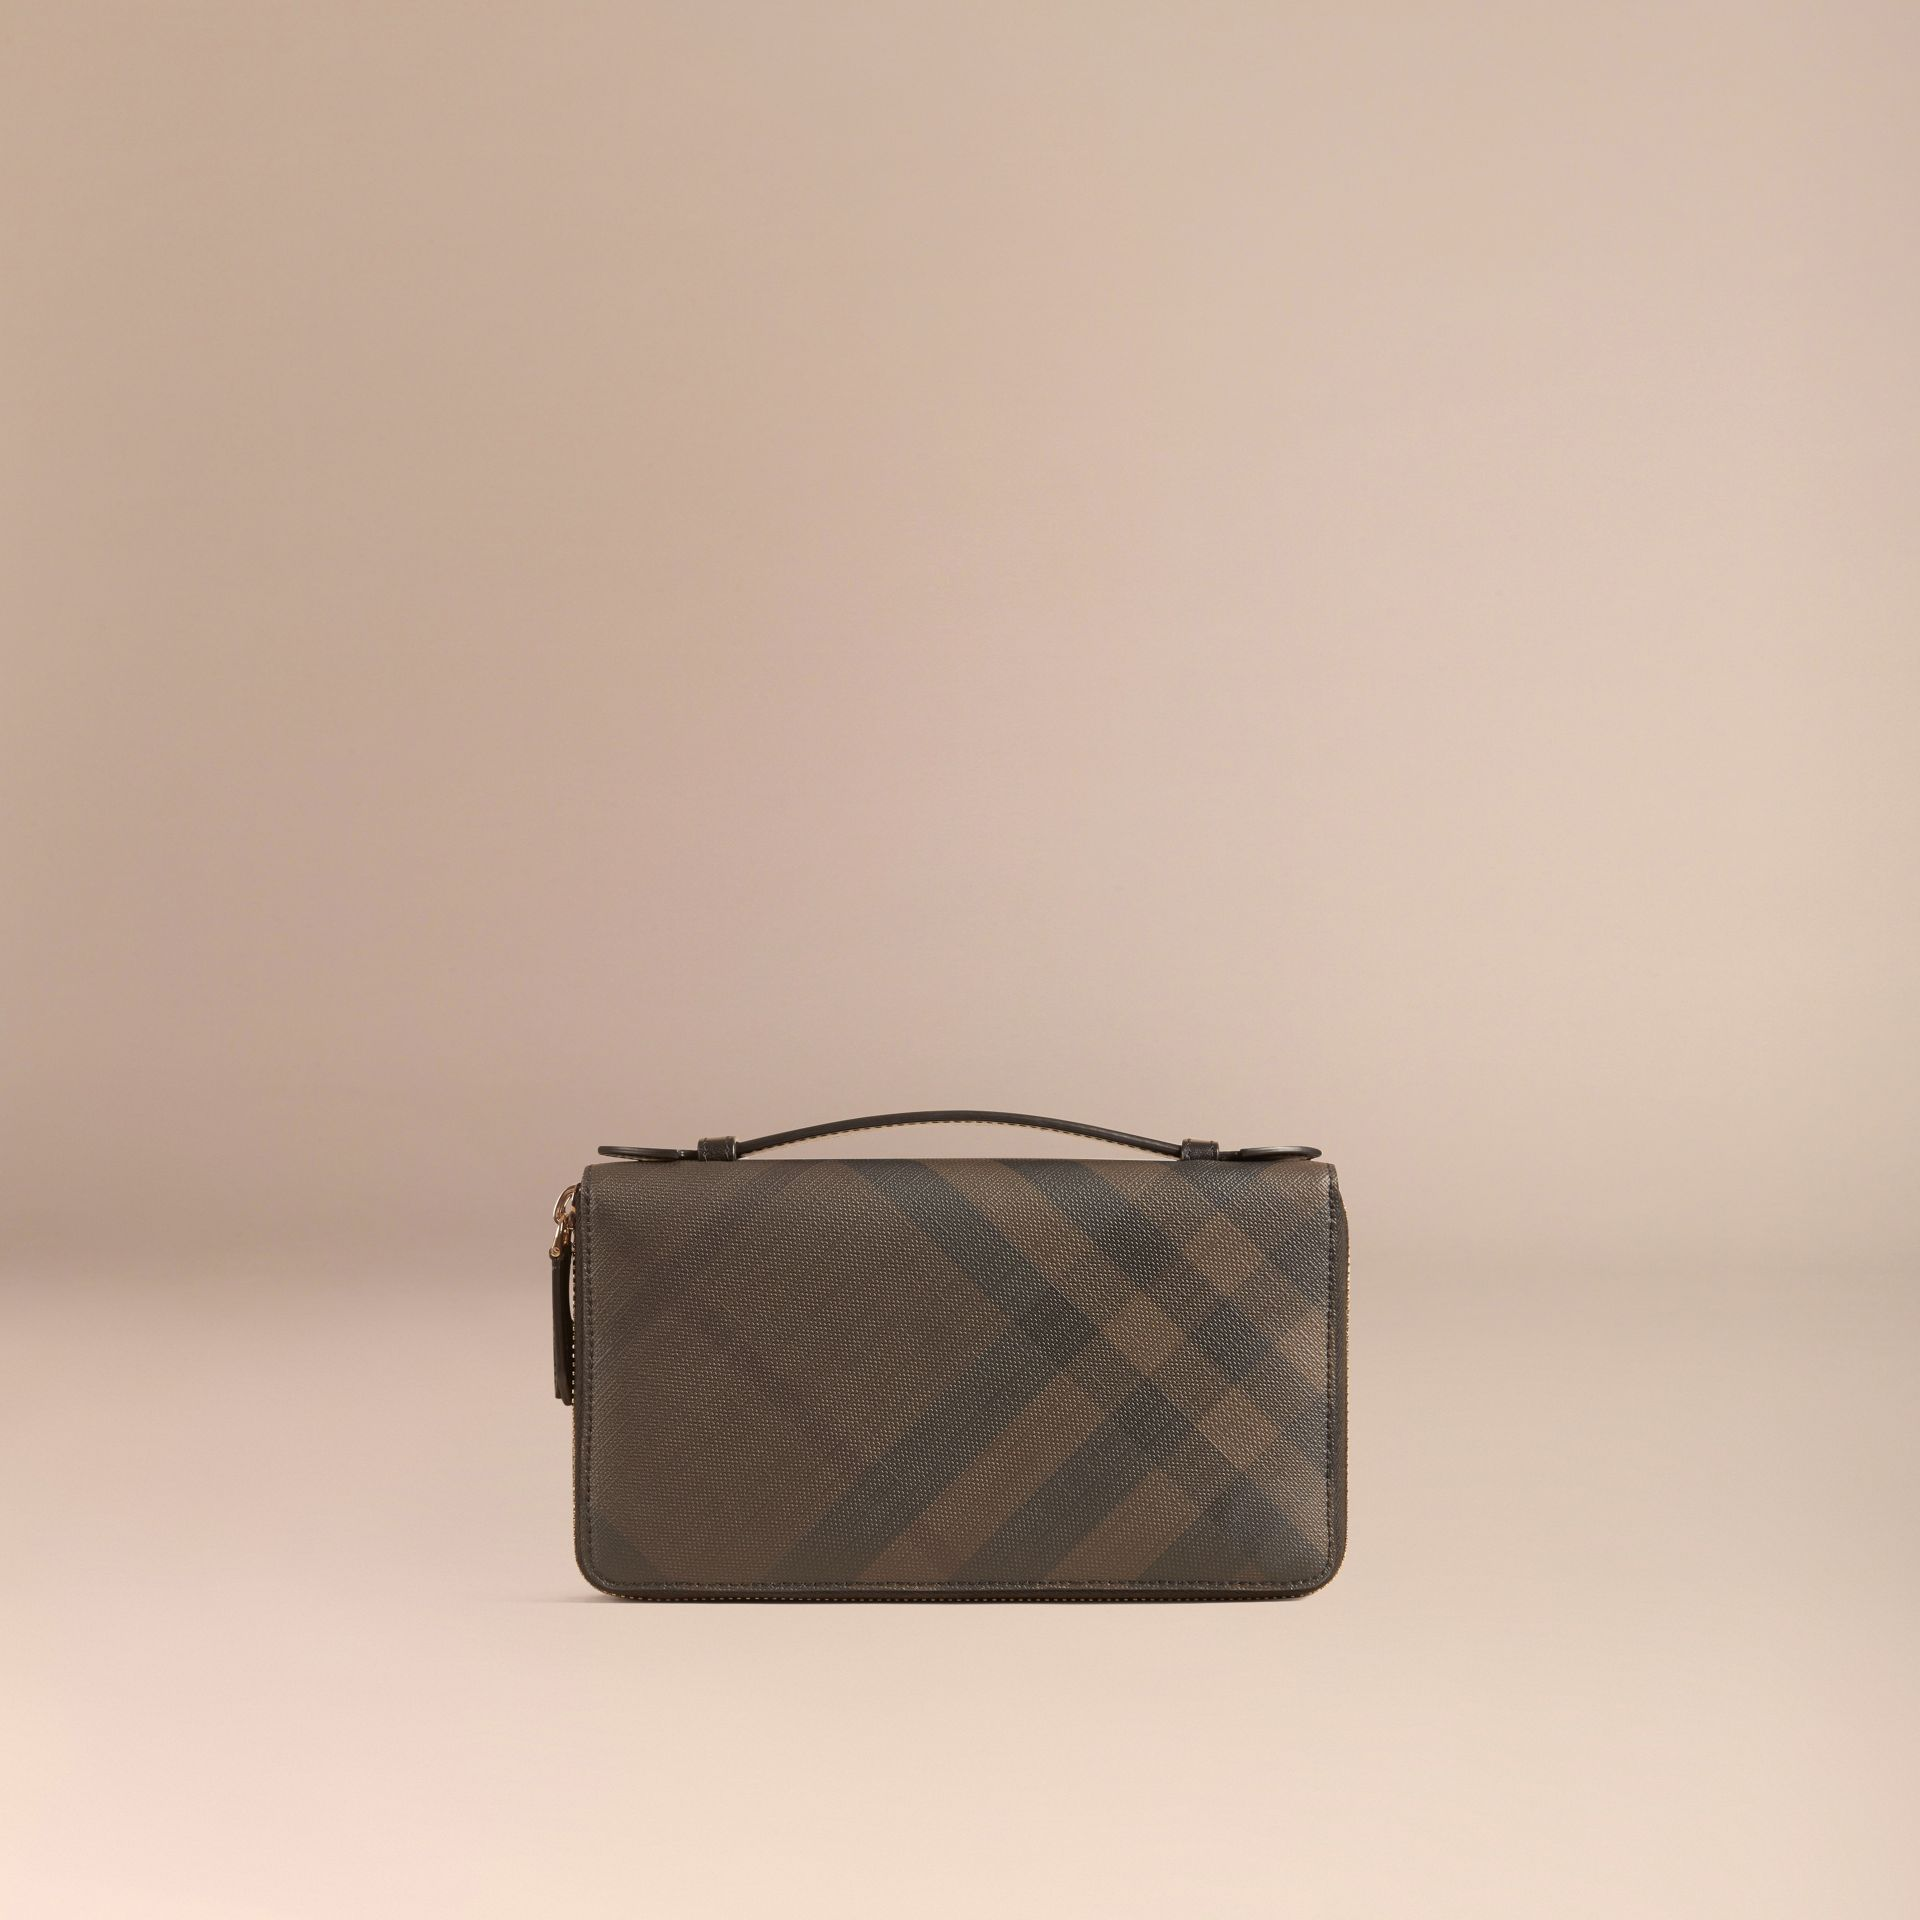 London Check Travel Wallet in Chocolate/black - Men | Burberry - gallery image 3